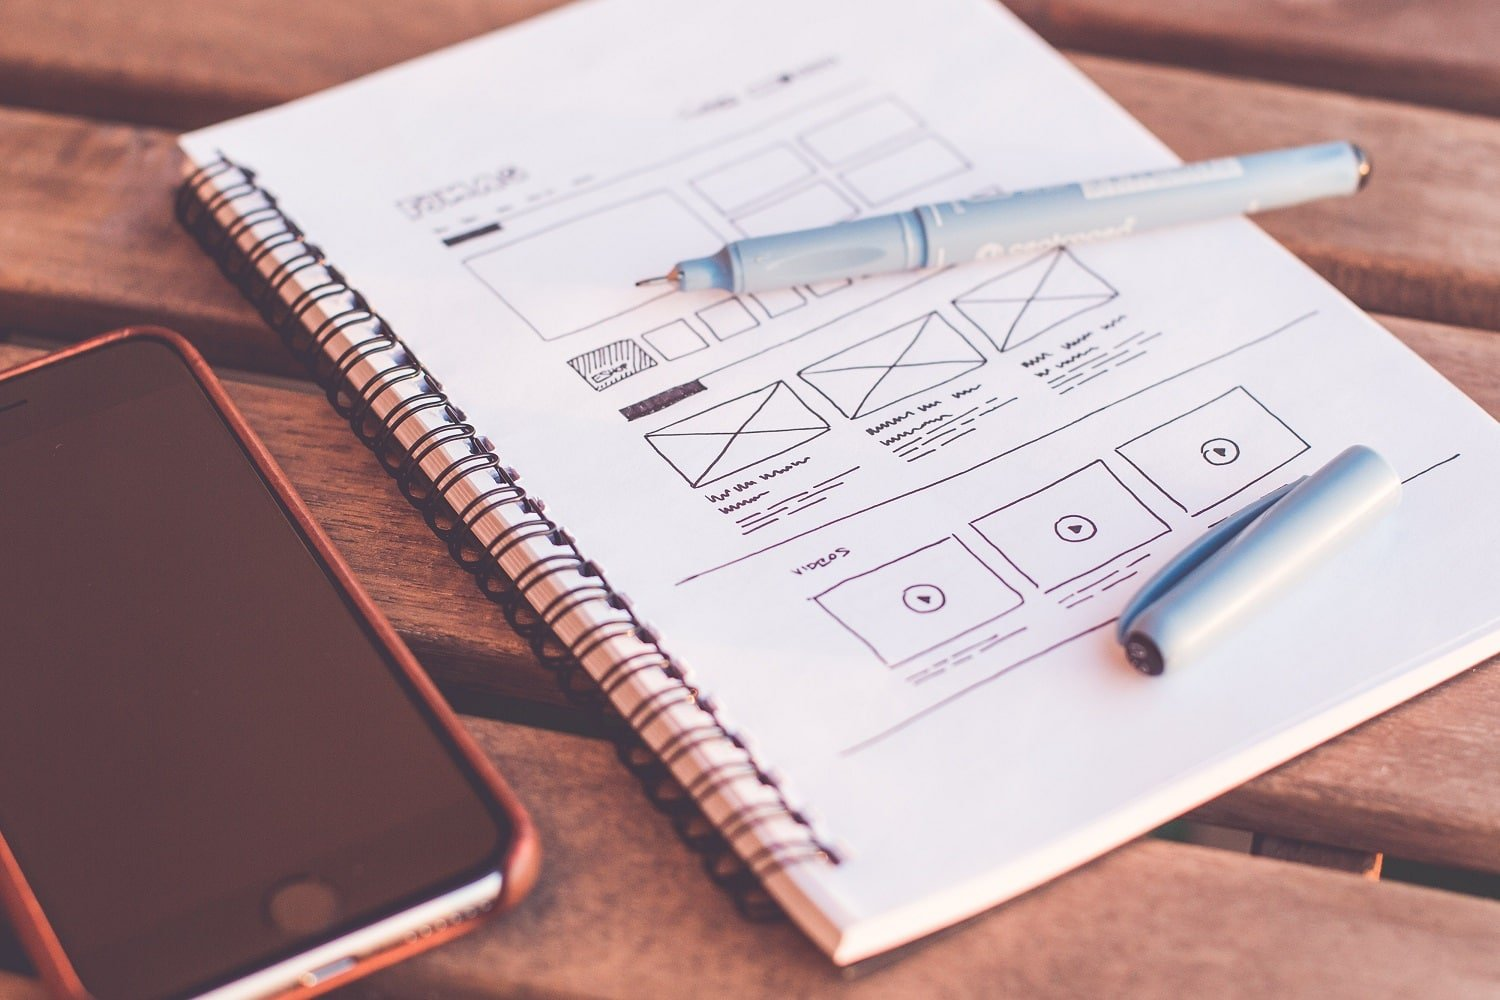 web design: a good first impression loaded quickly